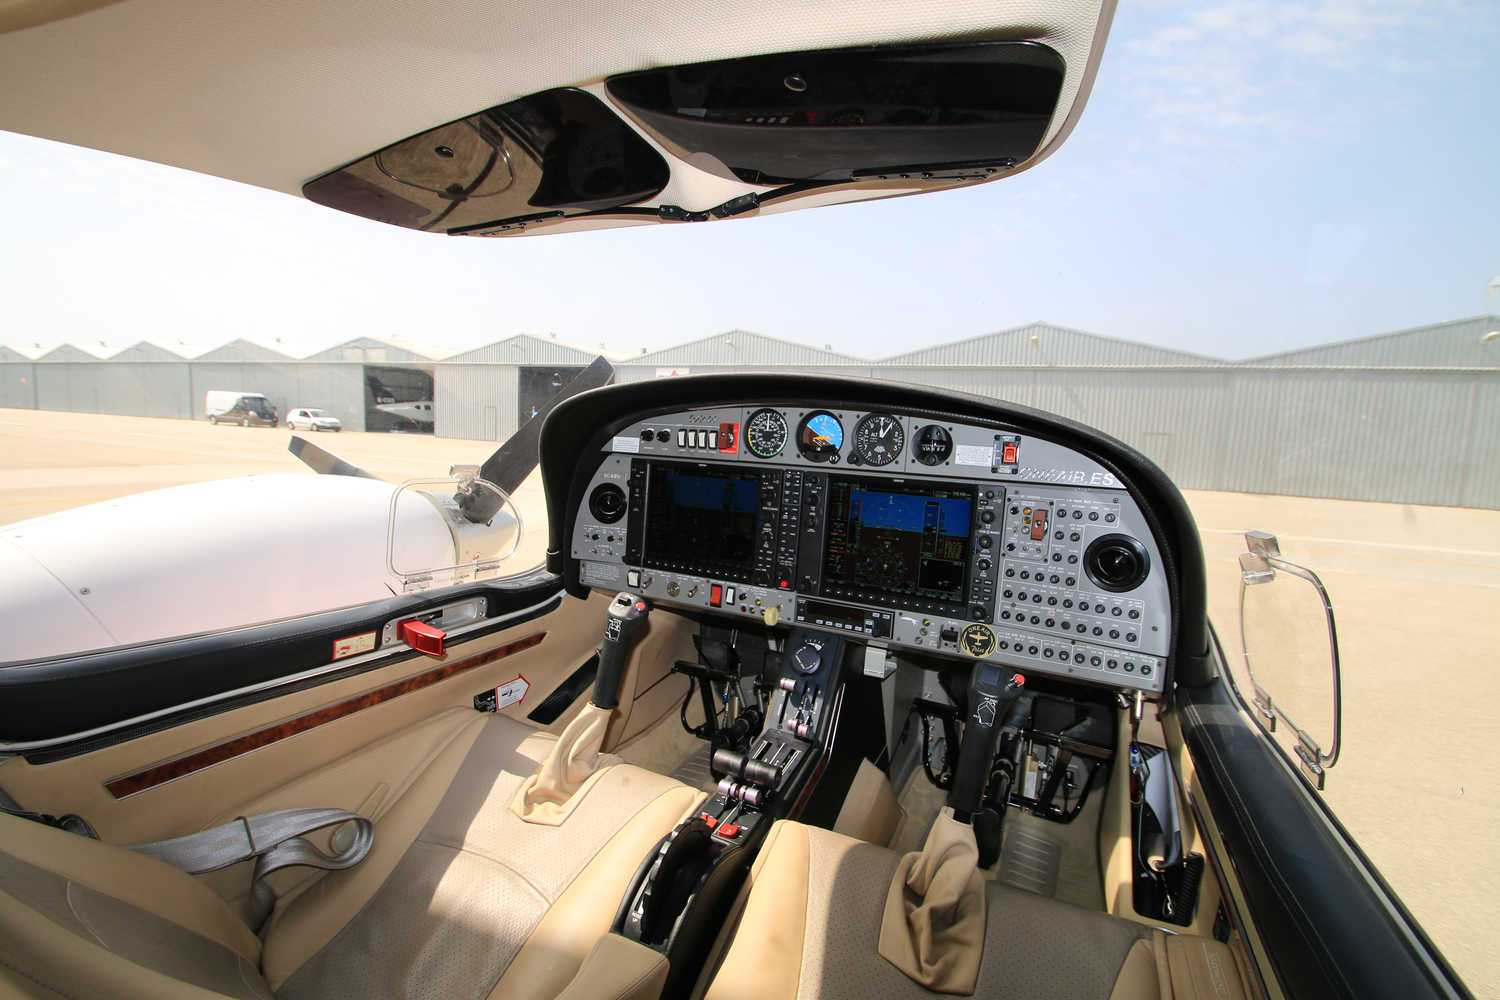 interior view of a diamond da42 aircraft owned by one air in the aerodrome de velez